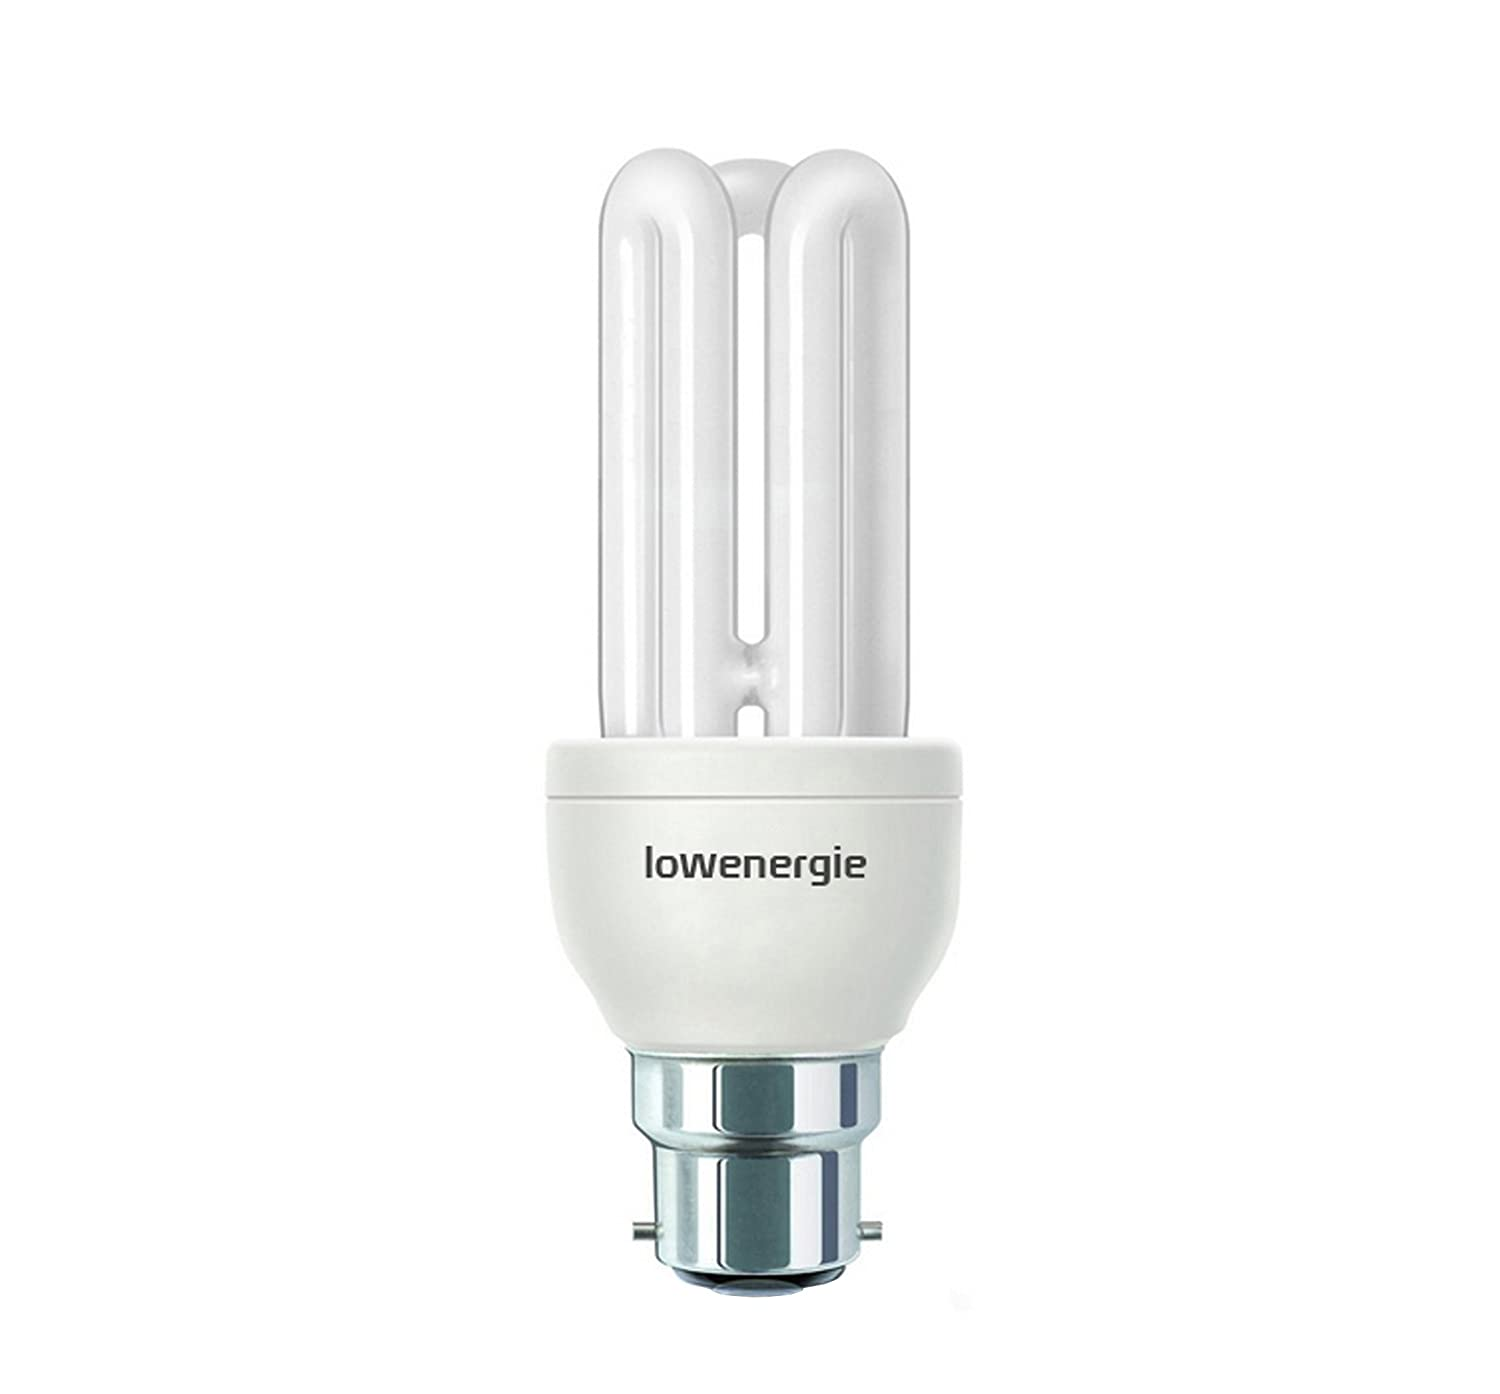 lamps lights that canada contain light change pollutants products services compact fluorescent ca climate mercury lamp en cfl environment